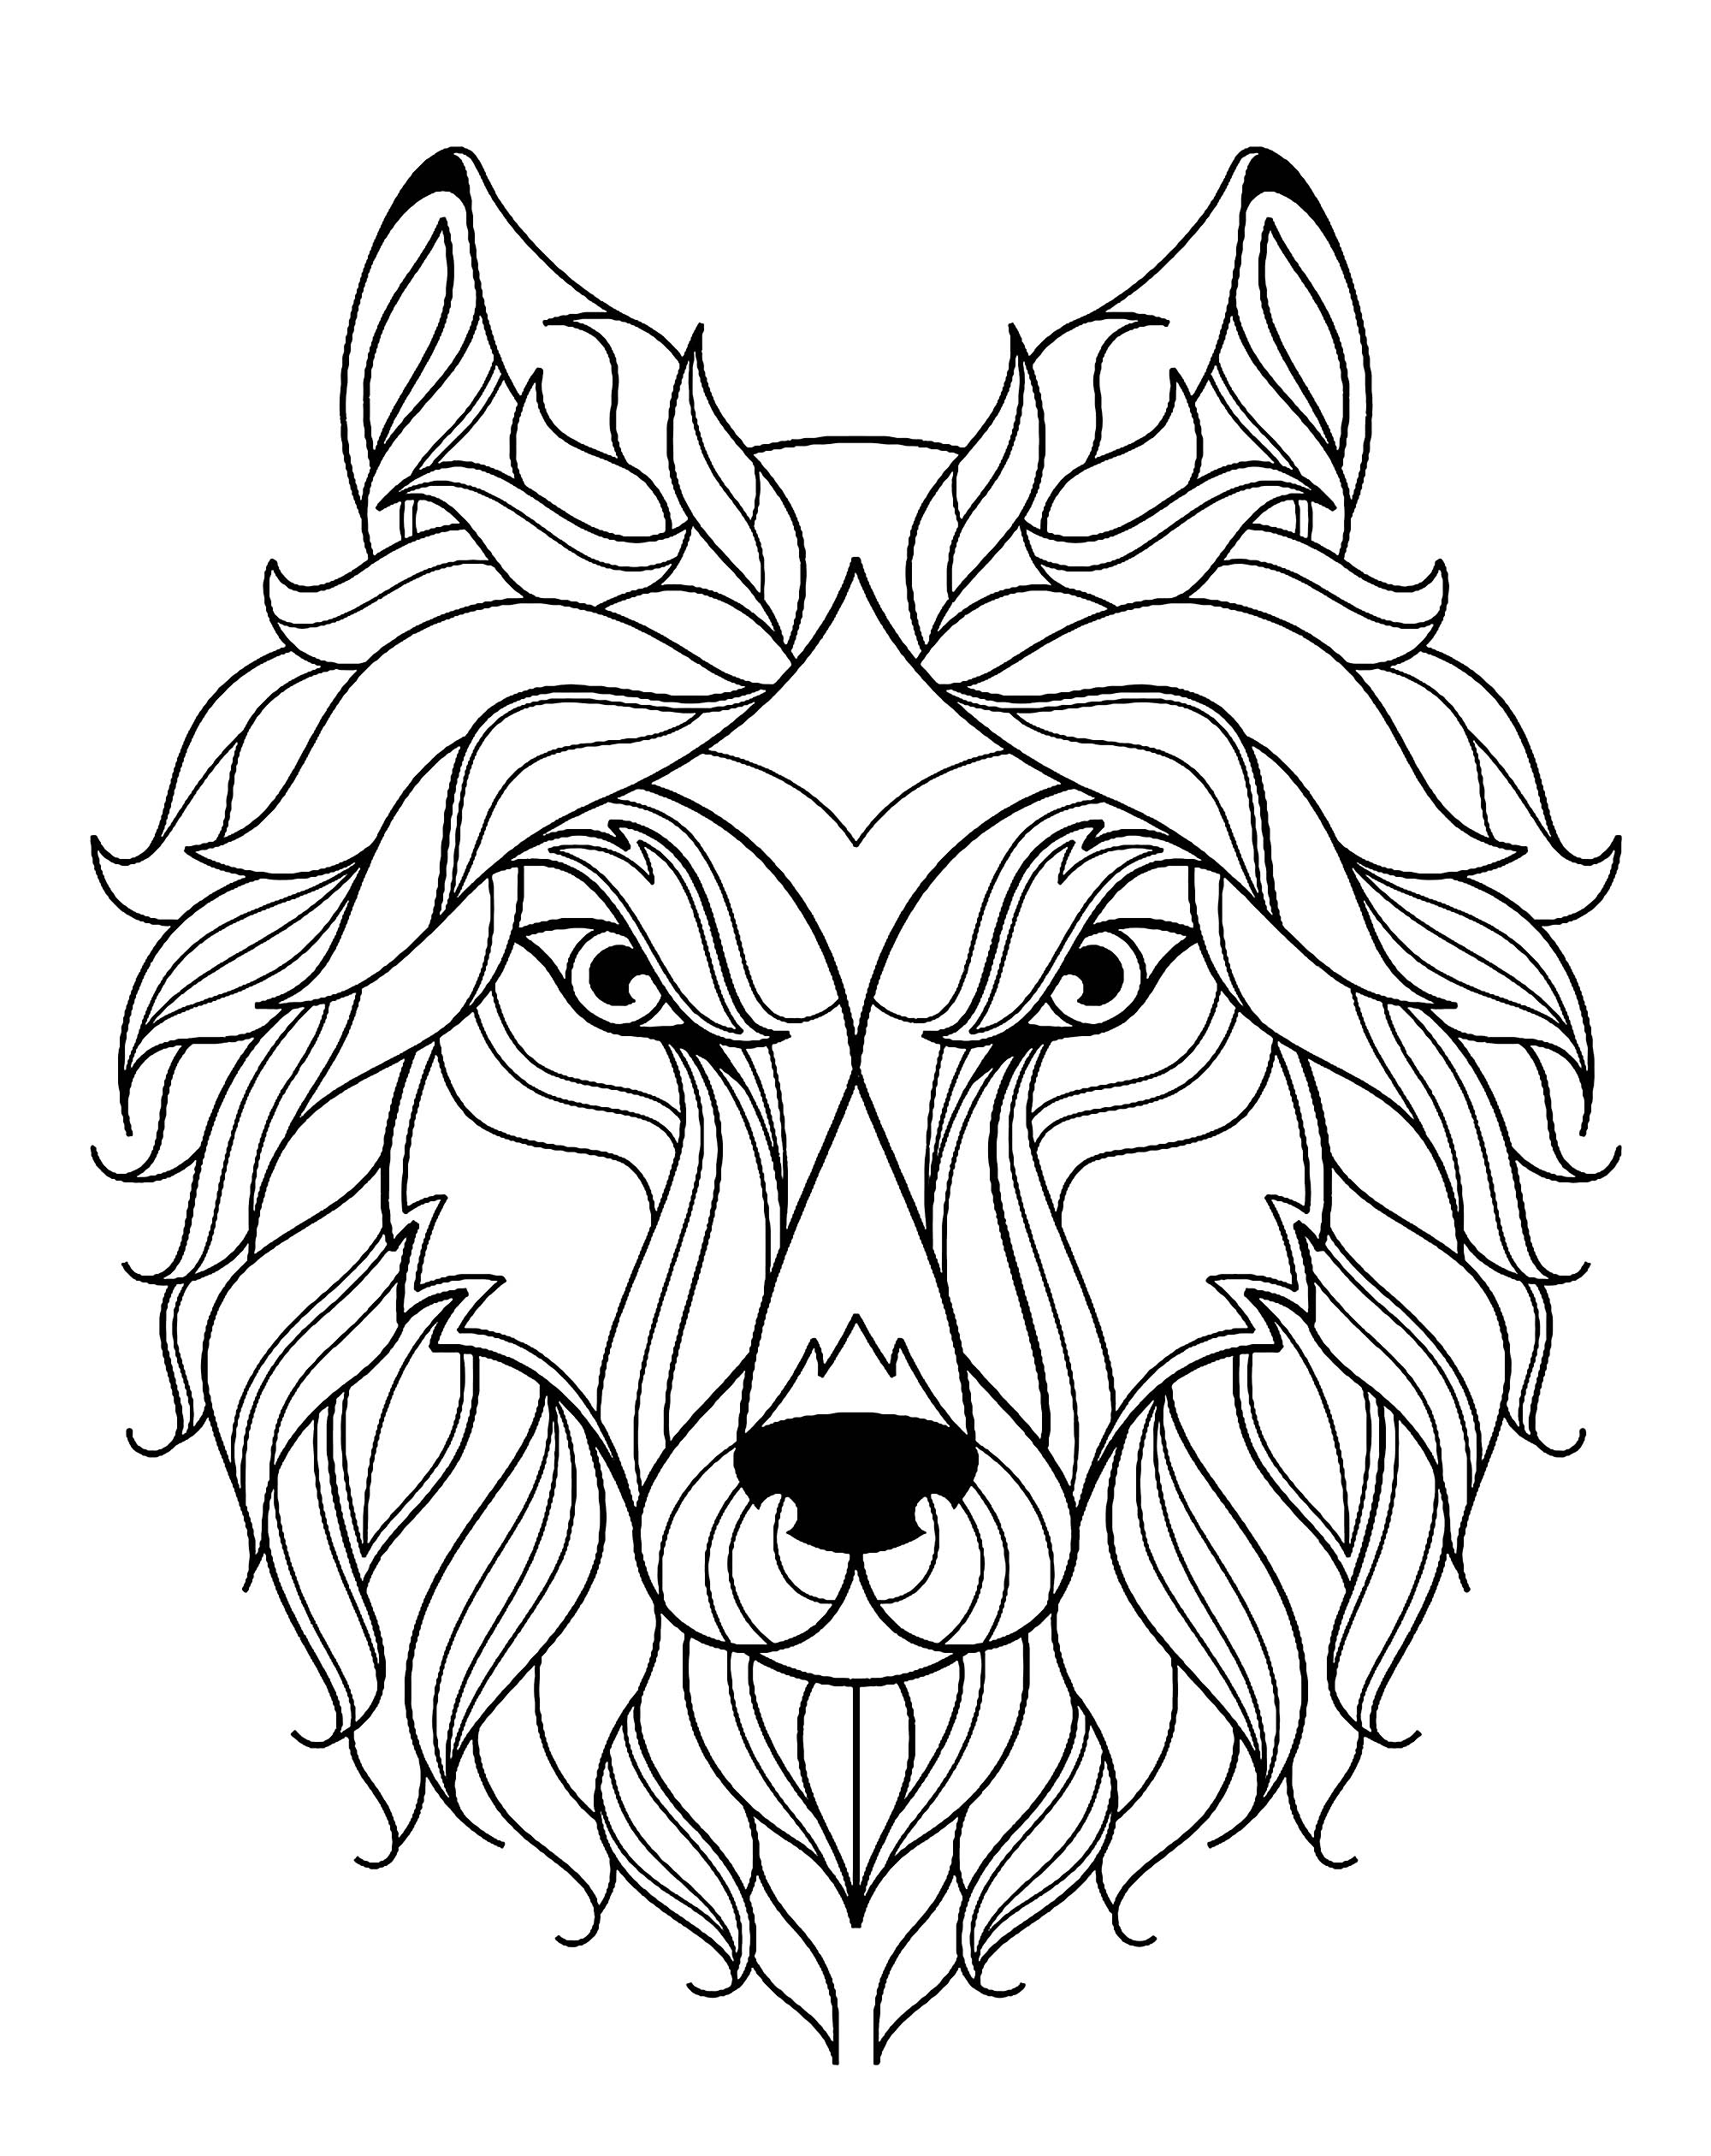 wolf coloring page wolf free to color for kids wolf kids coloring pages coloring wolf page